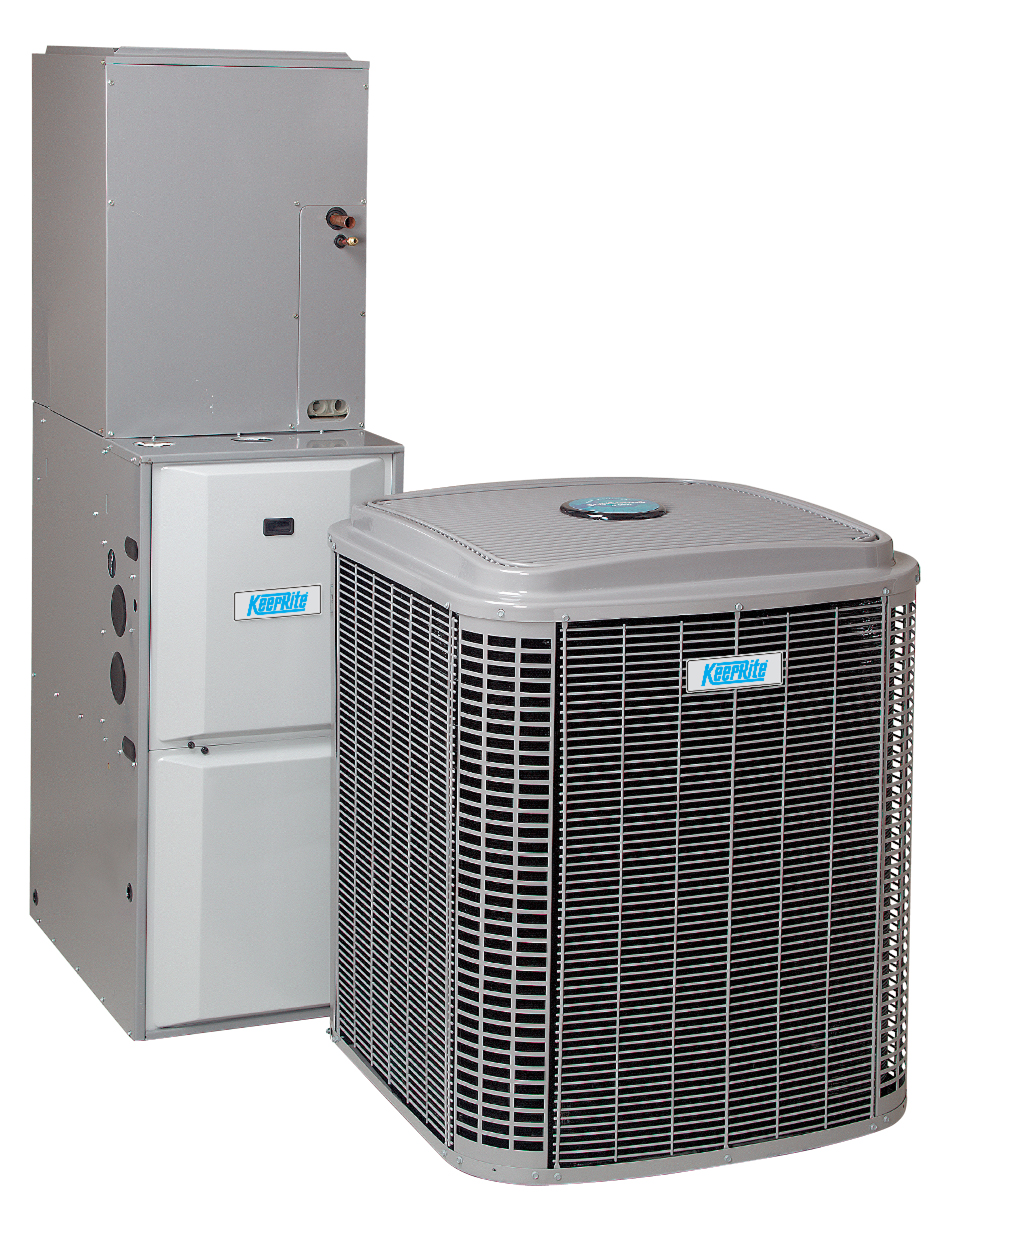 Best Furnace Air Conditioner Combination Images Frompo #4F6F7C